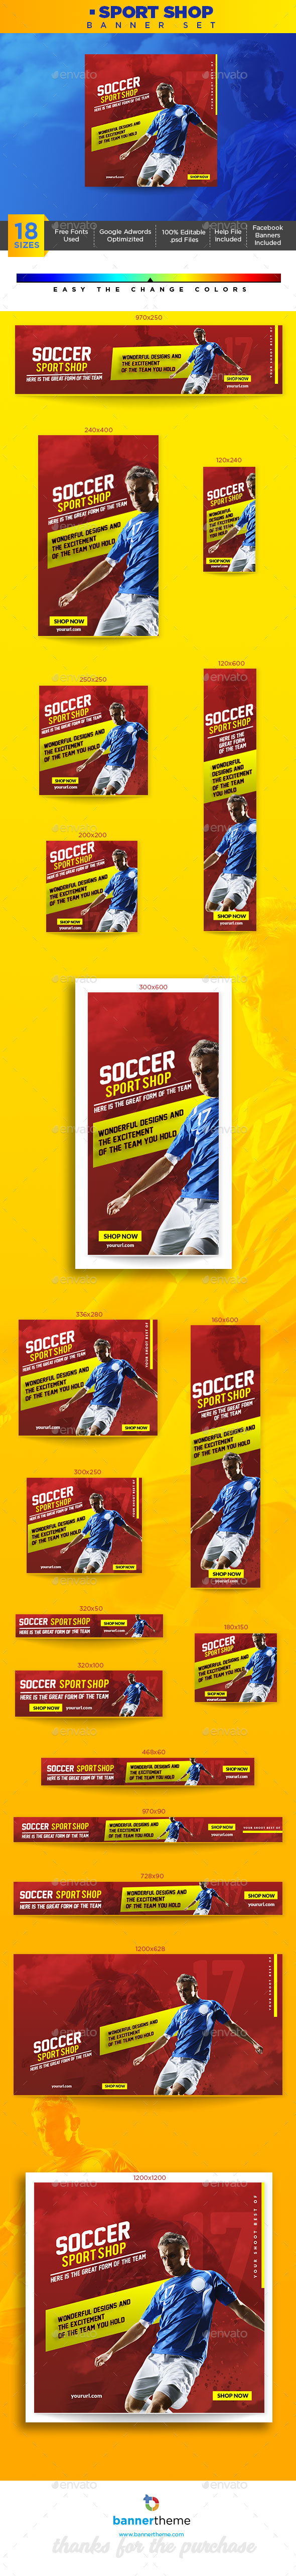 Sport Shop Banner - Banners & Ads Web Elements